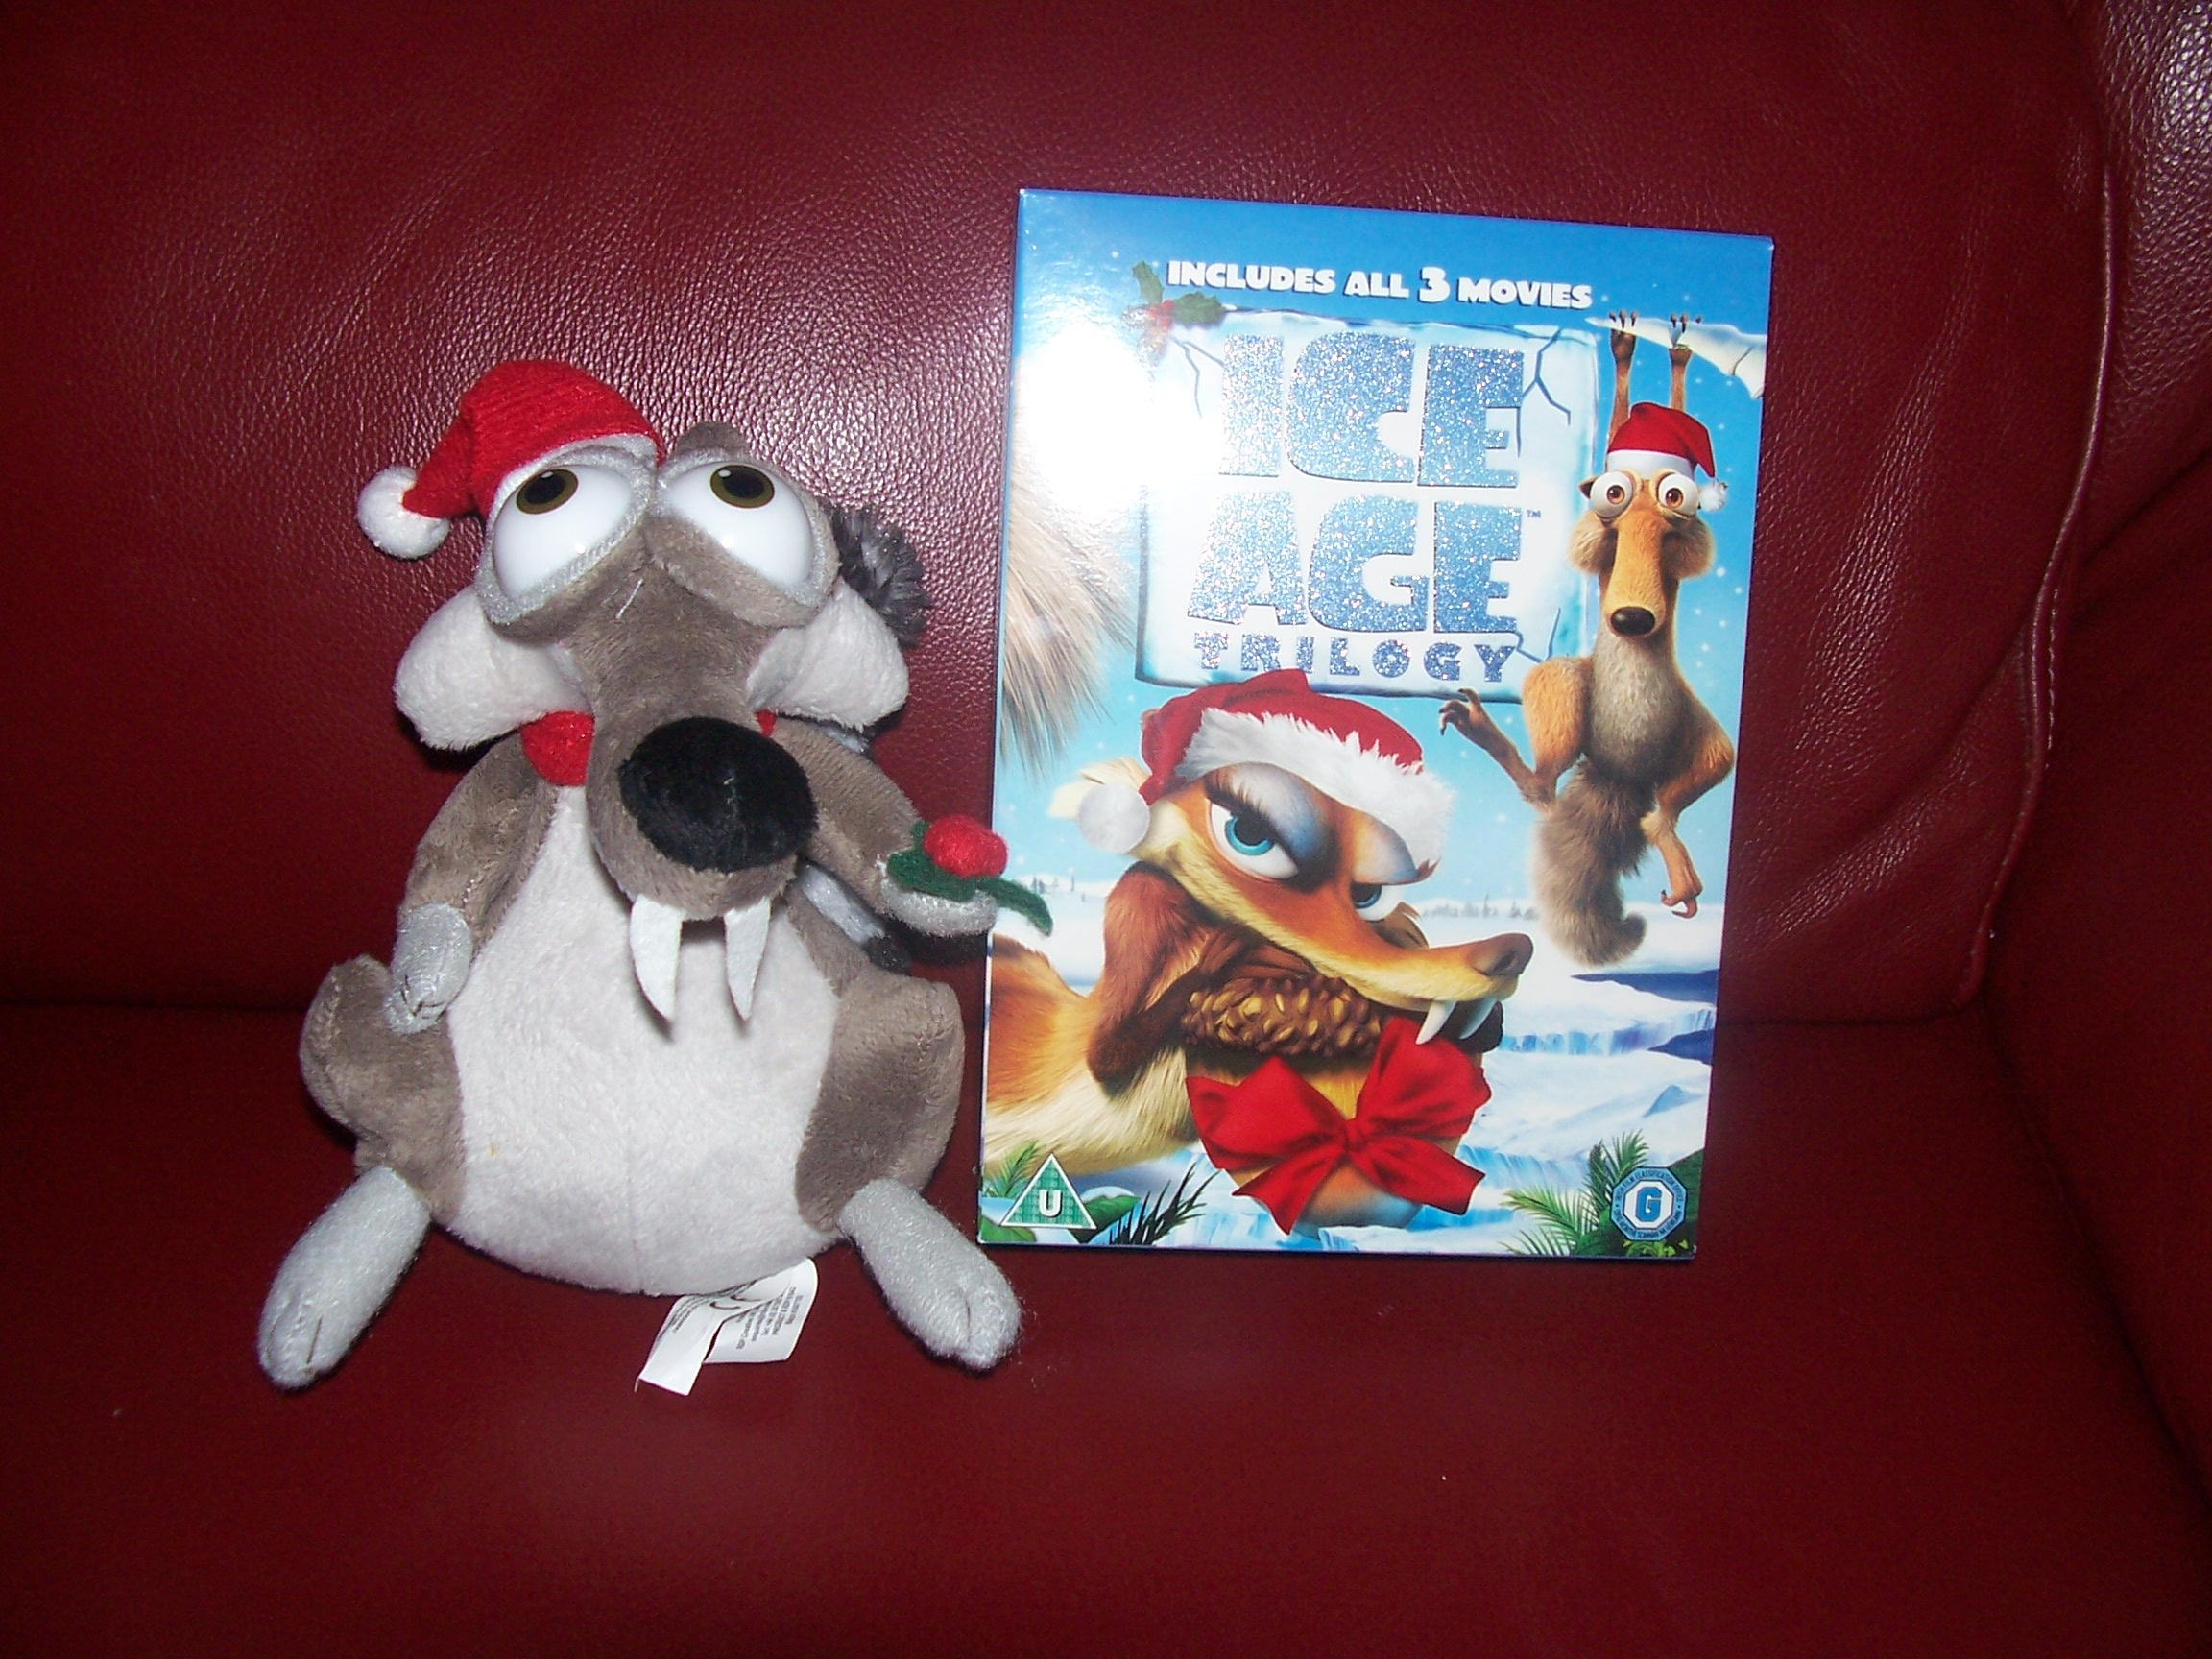 Ice Age A Mammoth Christmas.Ice Age A Mammoth Christmas Asda Exclusive